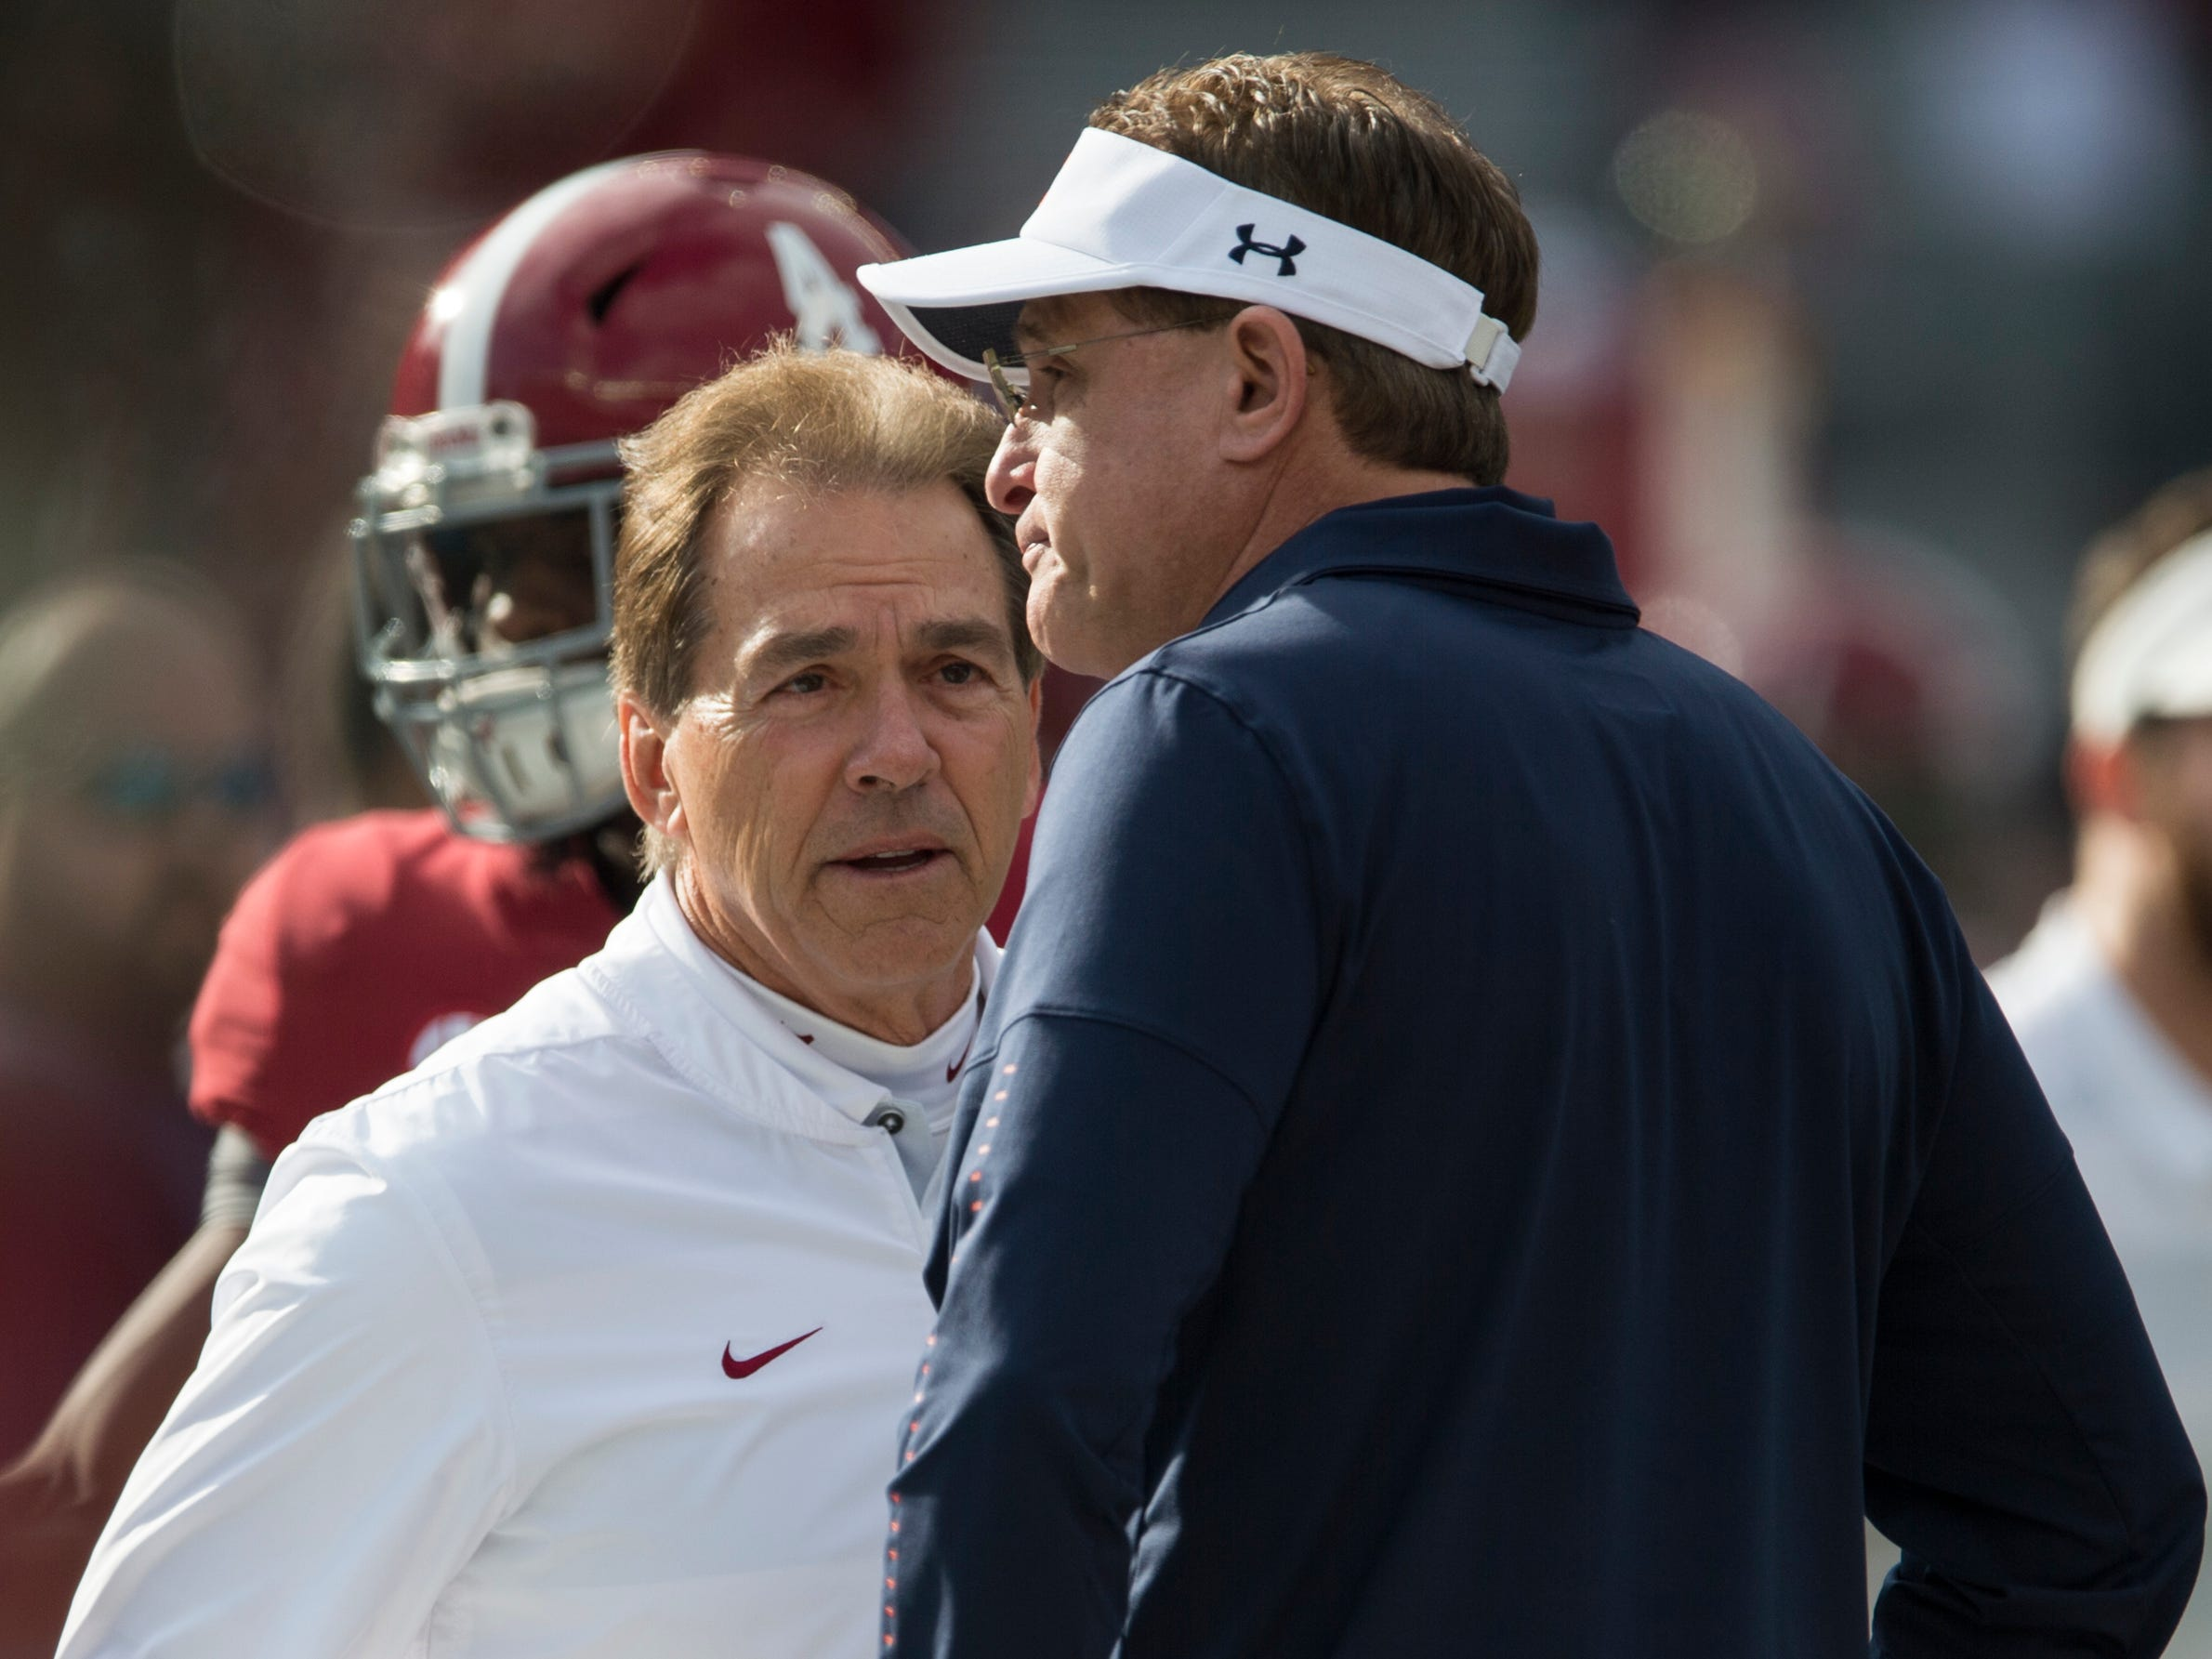 Auburn head coach Gus Malzahn and Alabama head coach Nick Saban talk as their teams warm up before the Iron Bowl at Bryant-Denny Stadium in Tuscaloosa, Ala., on Saturday, Nov. 24, 2018.